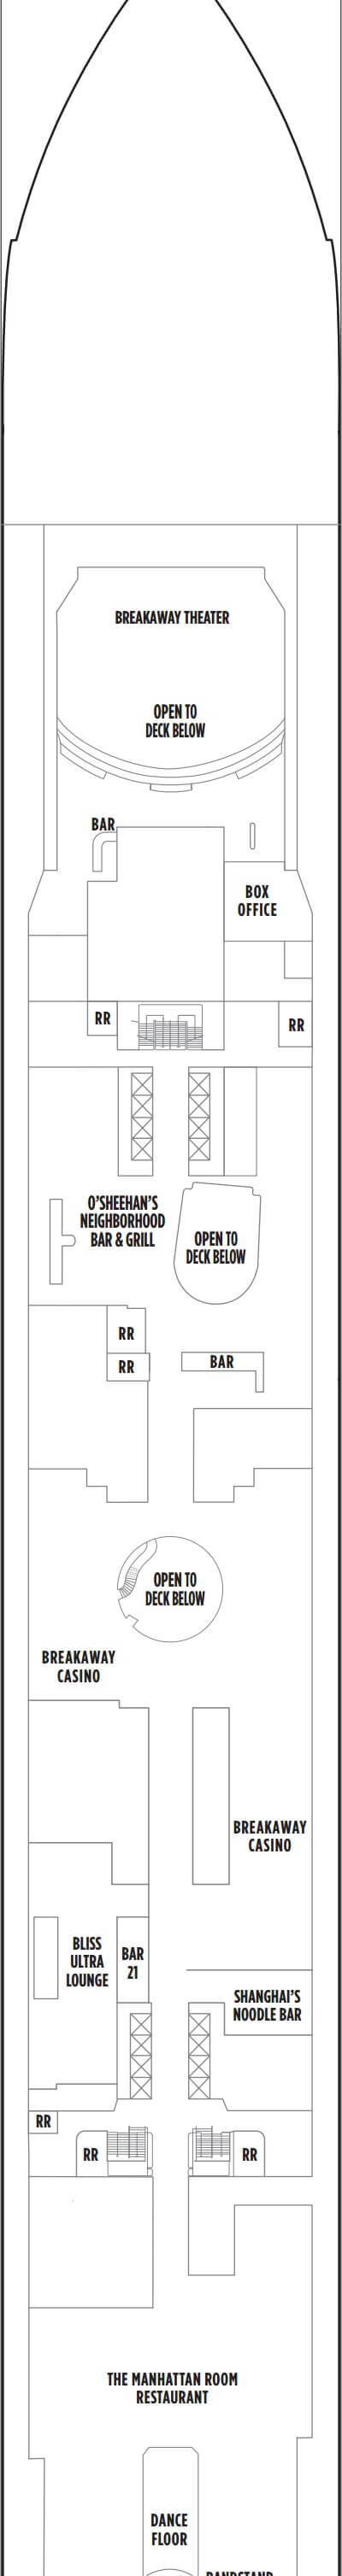 Norwegian Breakaway Deck 7 layout